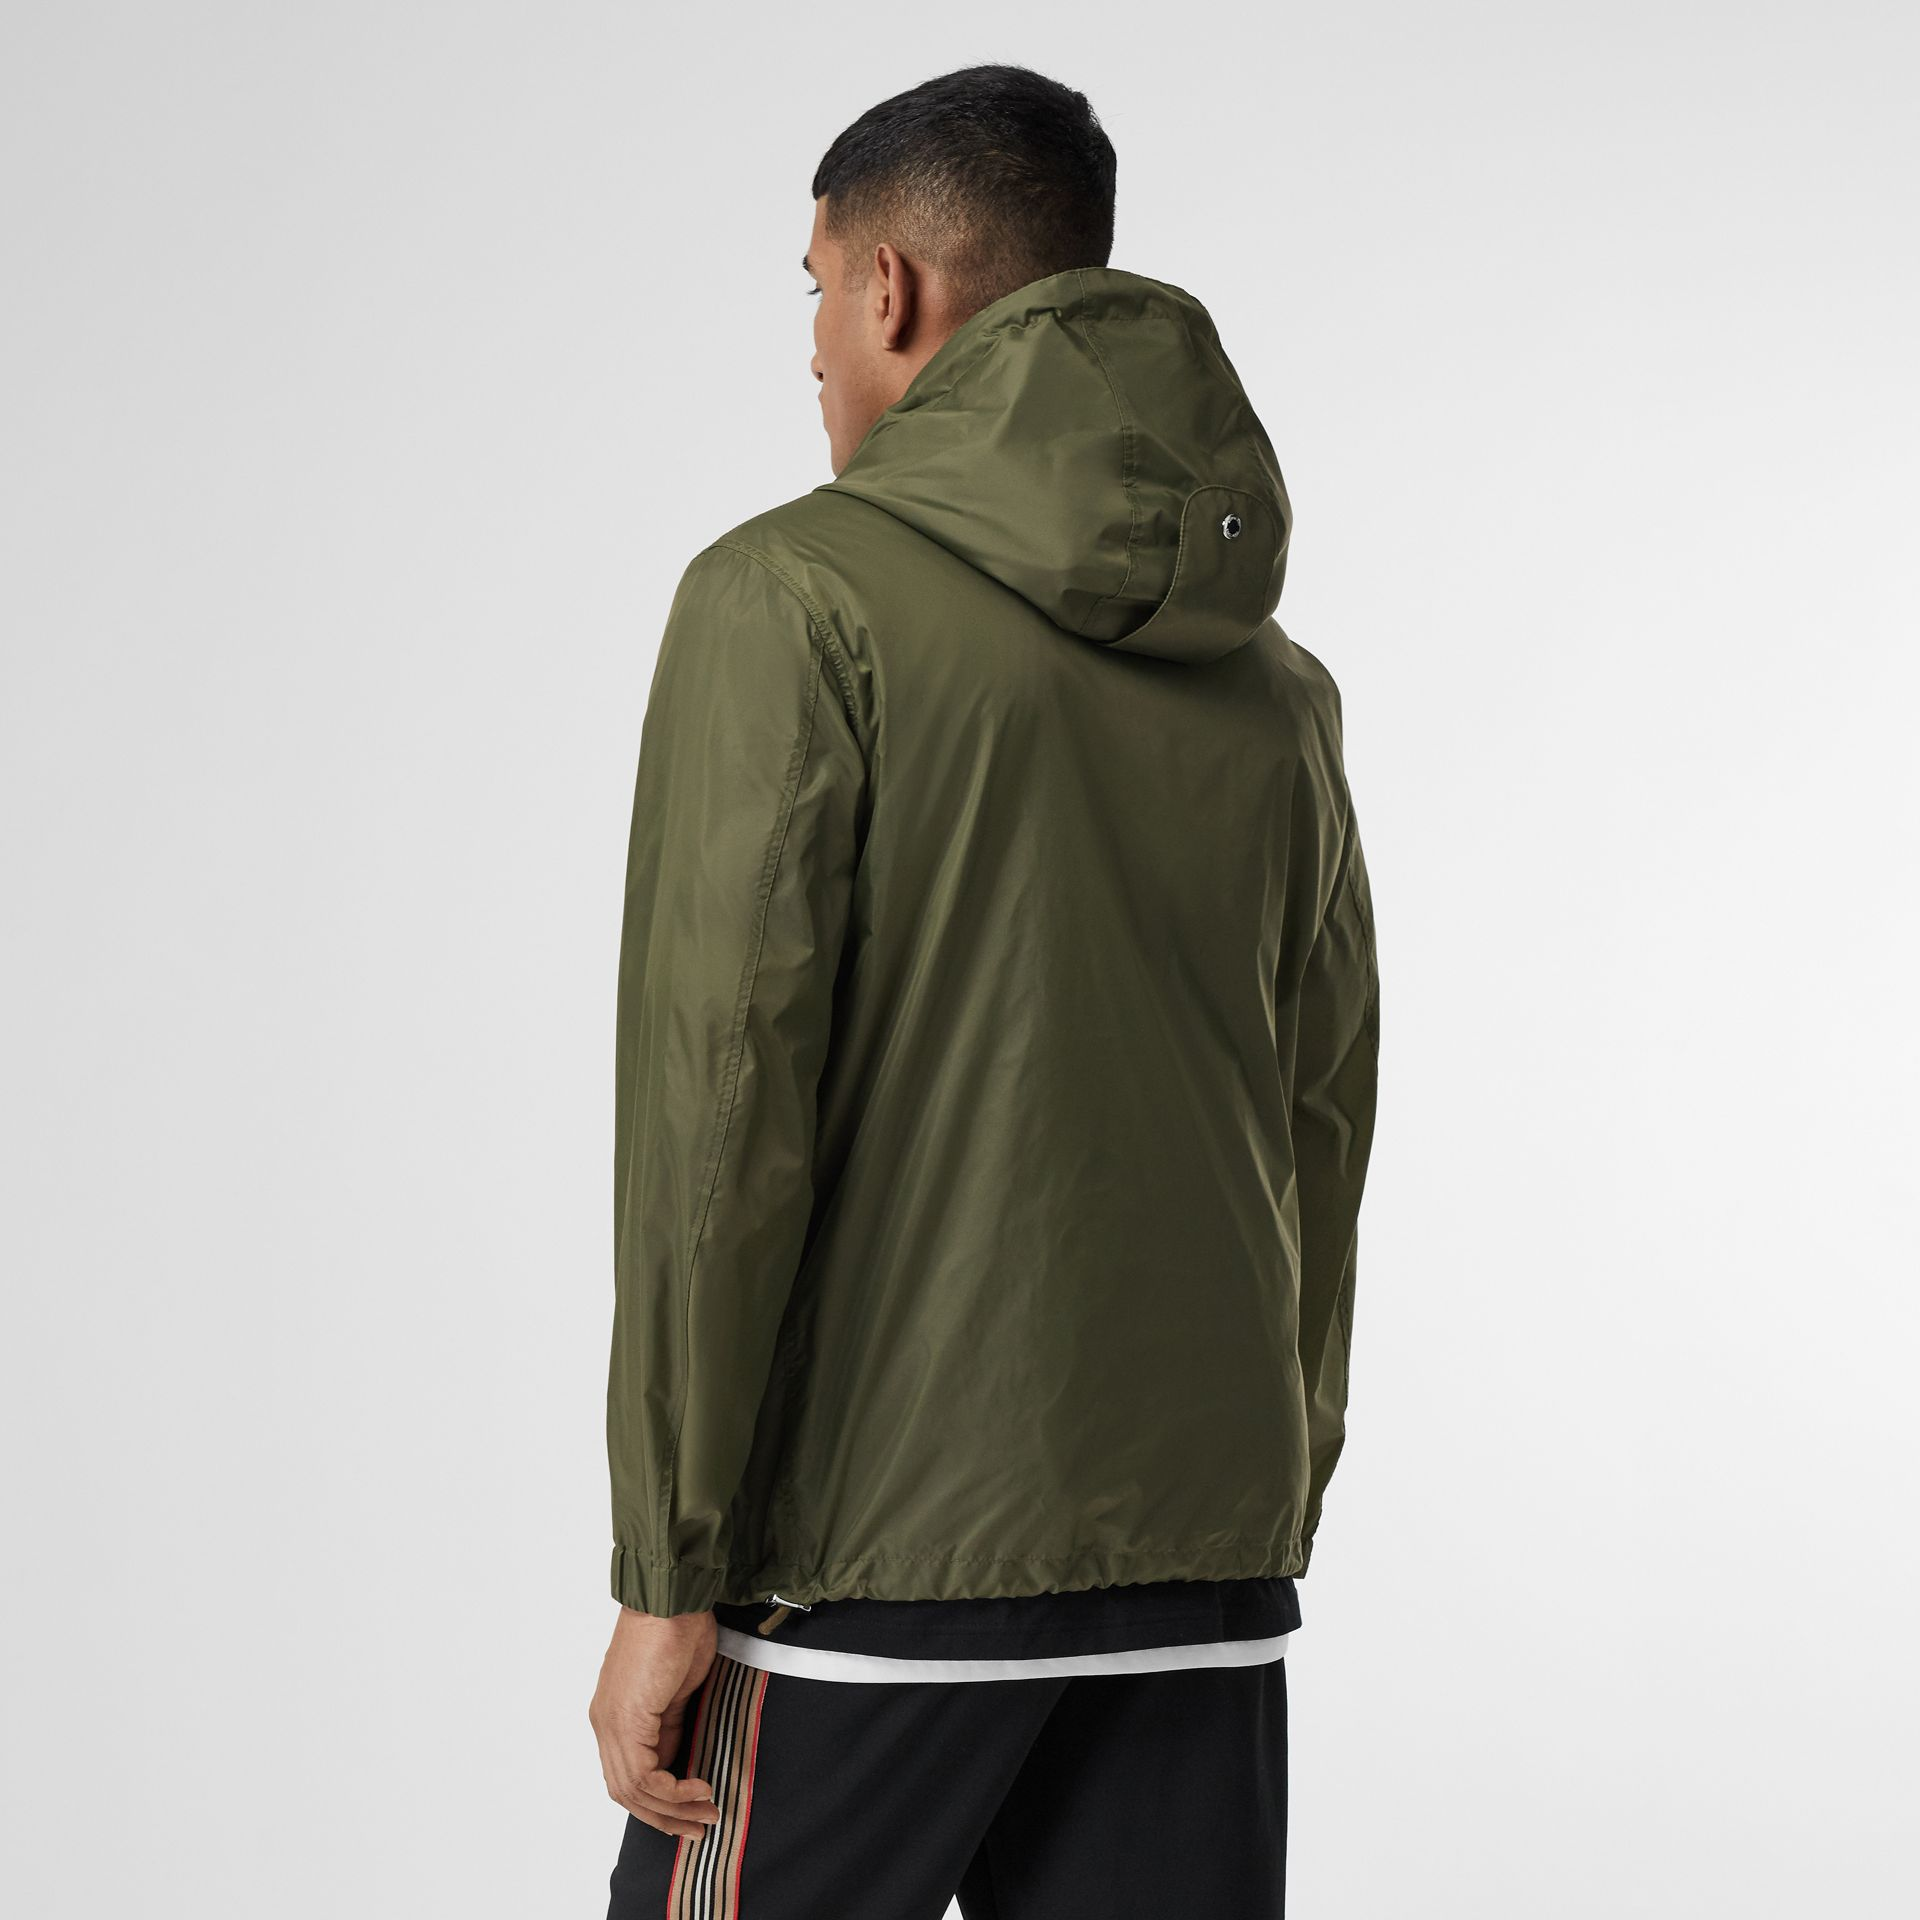 Monogram Motif Lightweight Hooded Jacket in Light Olive - Men | Burberry - gallery image 2